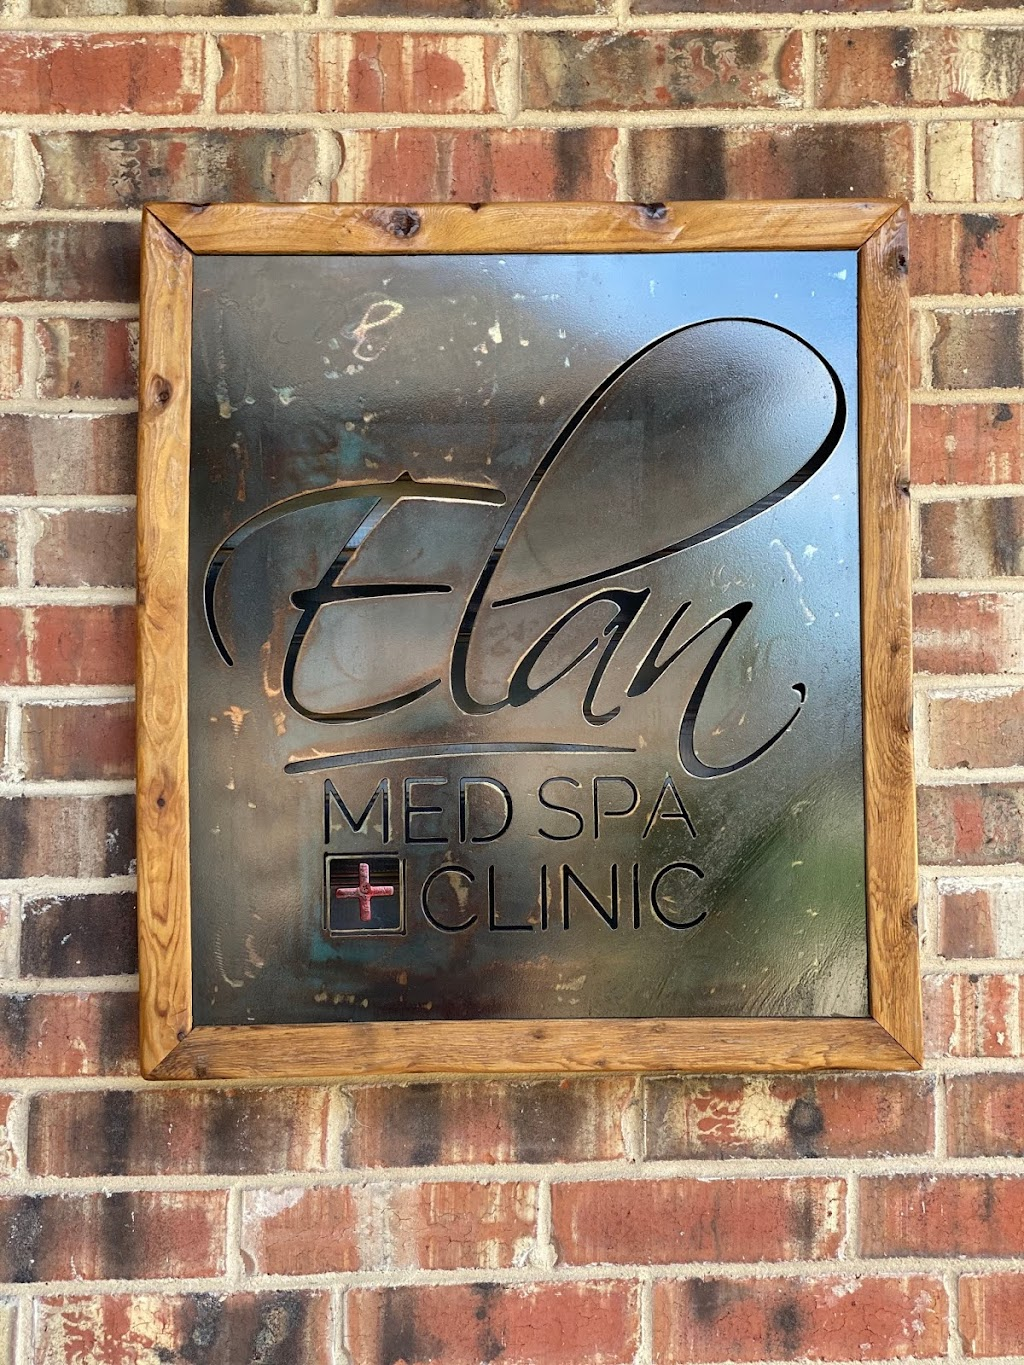 Elan Med Spa & Clinic - spa  | Photo 3 of 10 | Address: 1795 N Hwy 77 Suite 105, Waxahachie, TX 75165, USA | Phone: (972) 525-0800